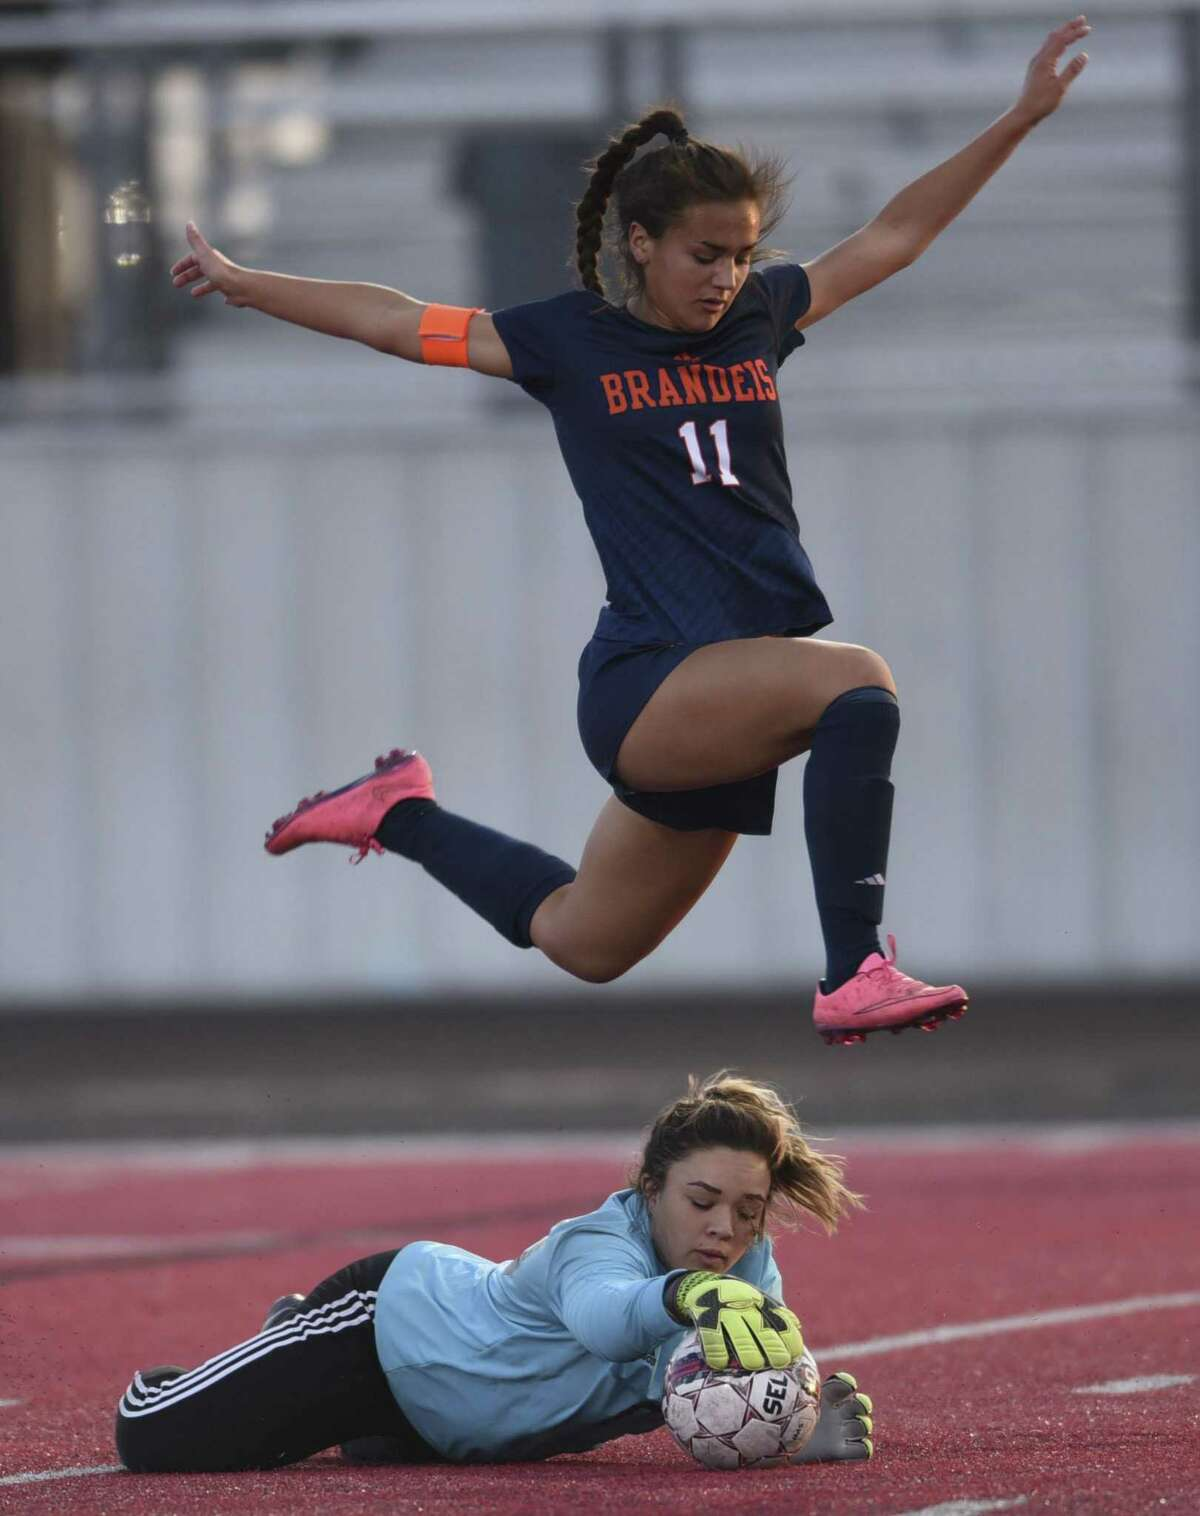 New Braunfels Canyon goalkeeper Alex Hayman makes a save as Samantha Palomino of Brandeis jumps during girls soccer action at New Braunfels Canyon High School on Thursday, March 23, 2017.